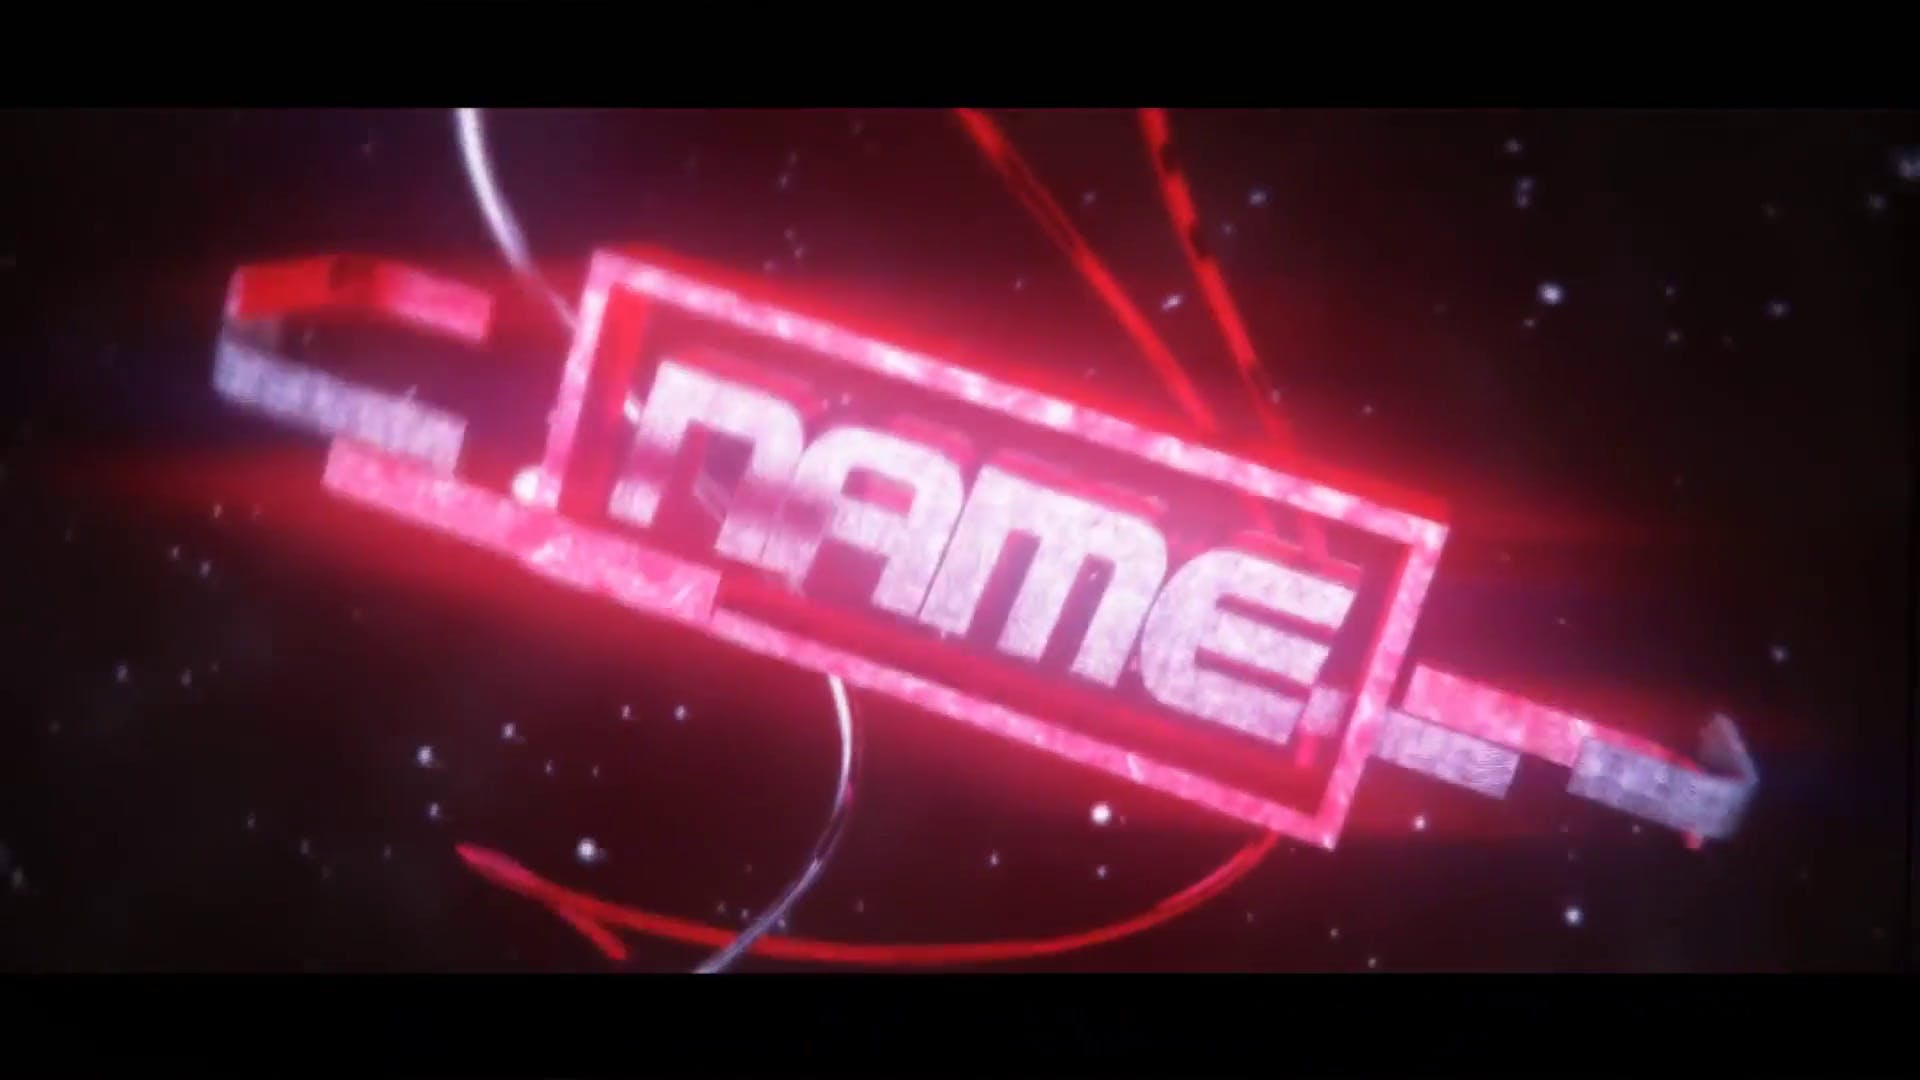 Red Sync Cinema 4D After Effects Intro Template FREE DOWNLOAD